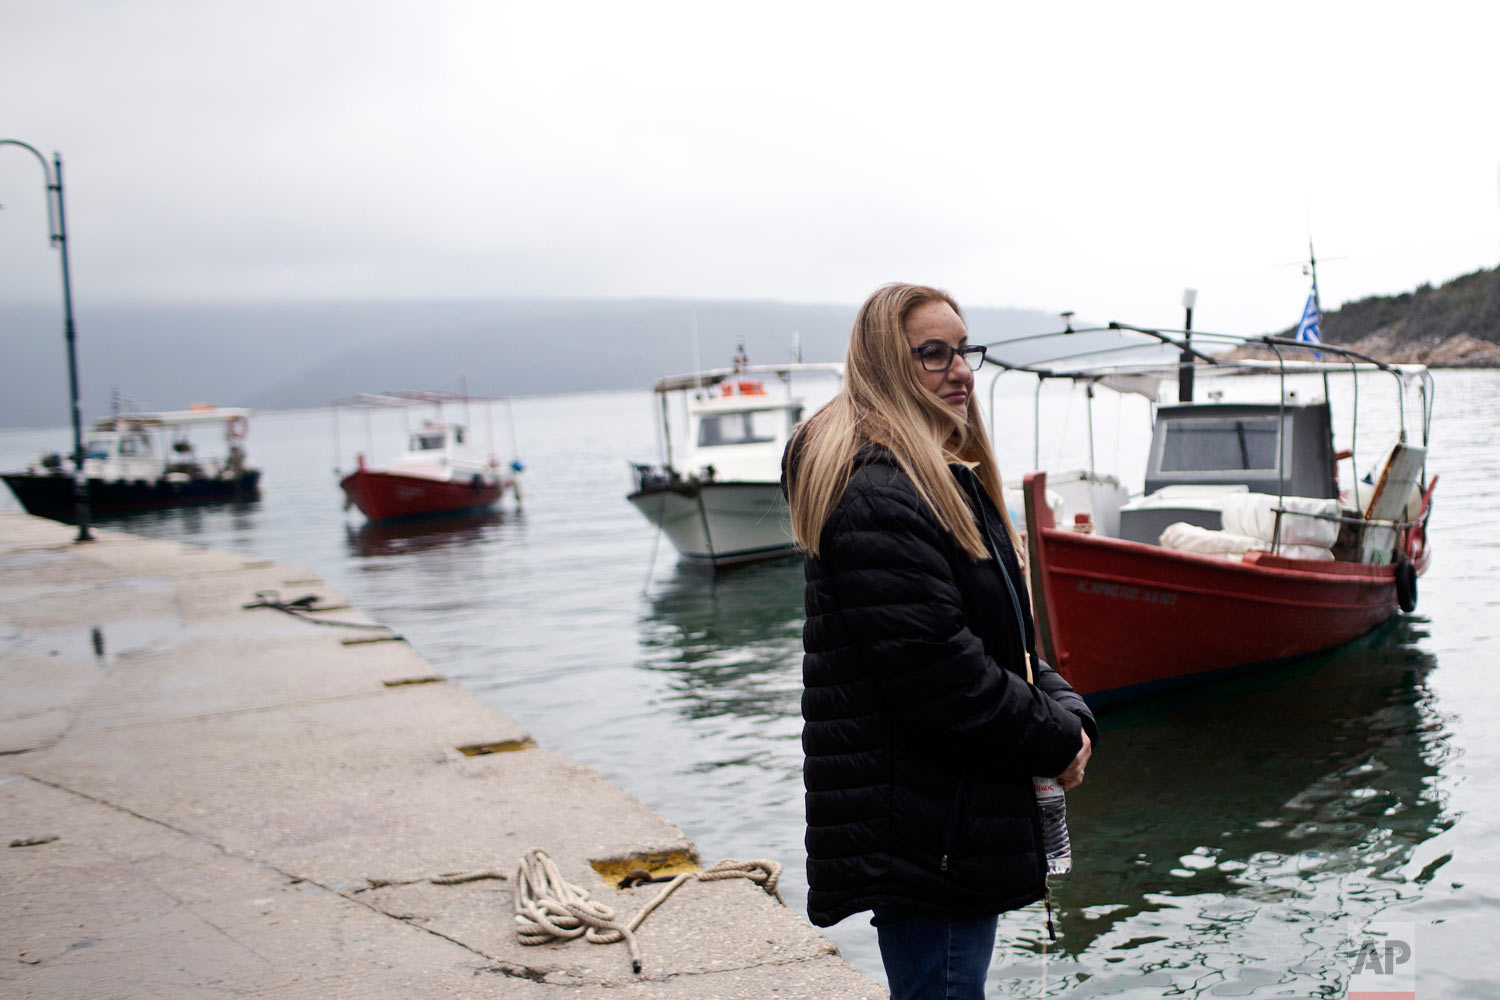 Archaeologist Elpida Hadjidaki stands at the harbor of Steni Vala, with Peristera island seen in the background, in Greece, April 7, 2019. (AP Photo/Petros Giannakouris)